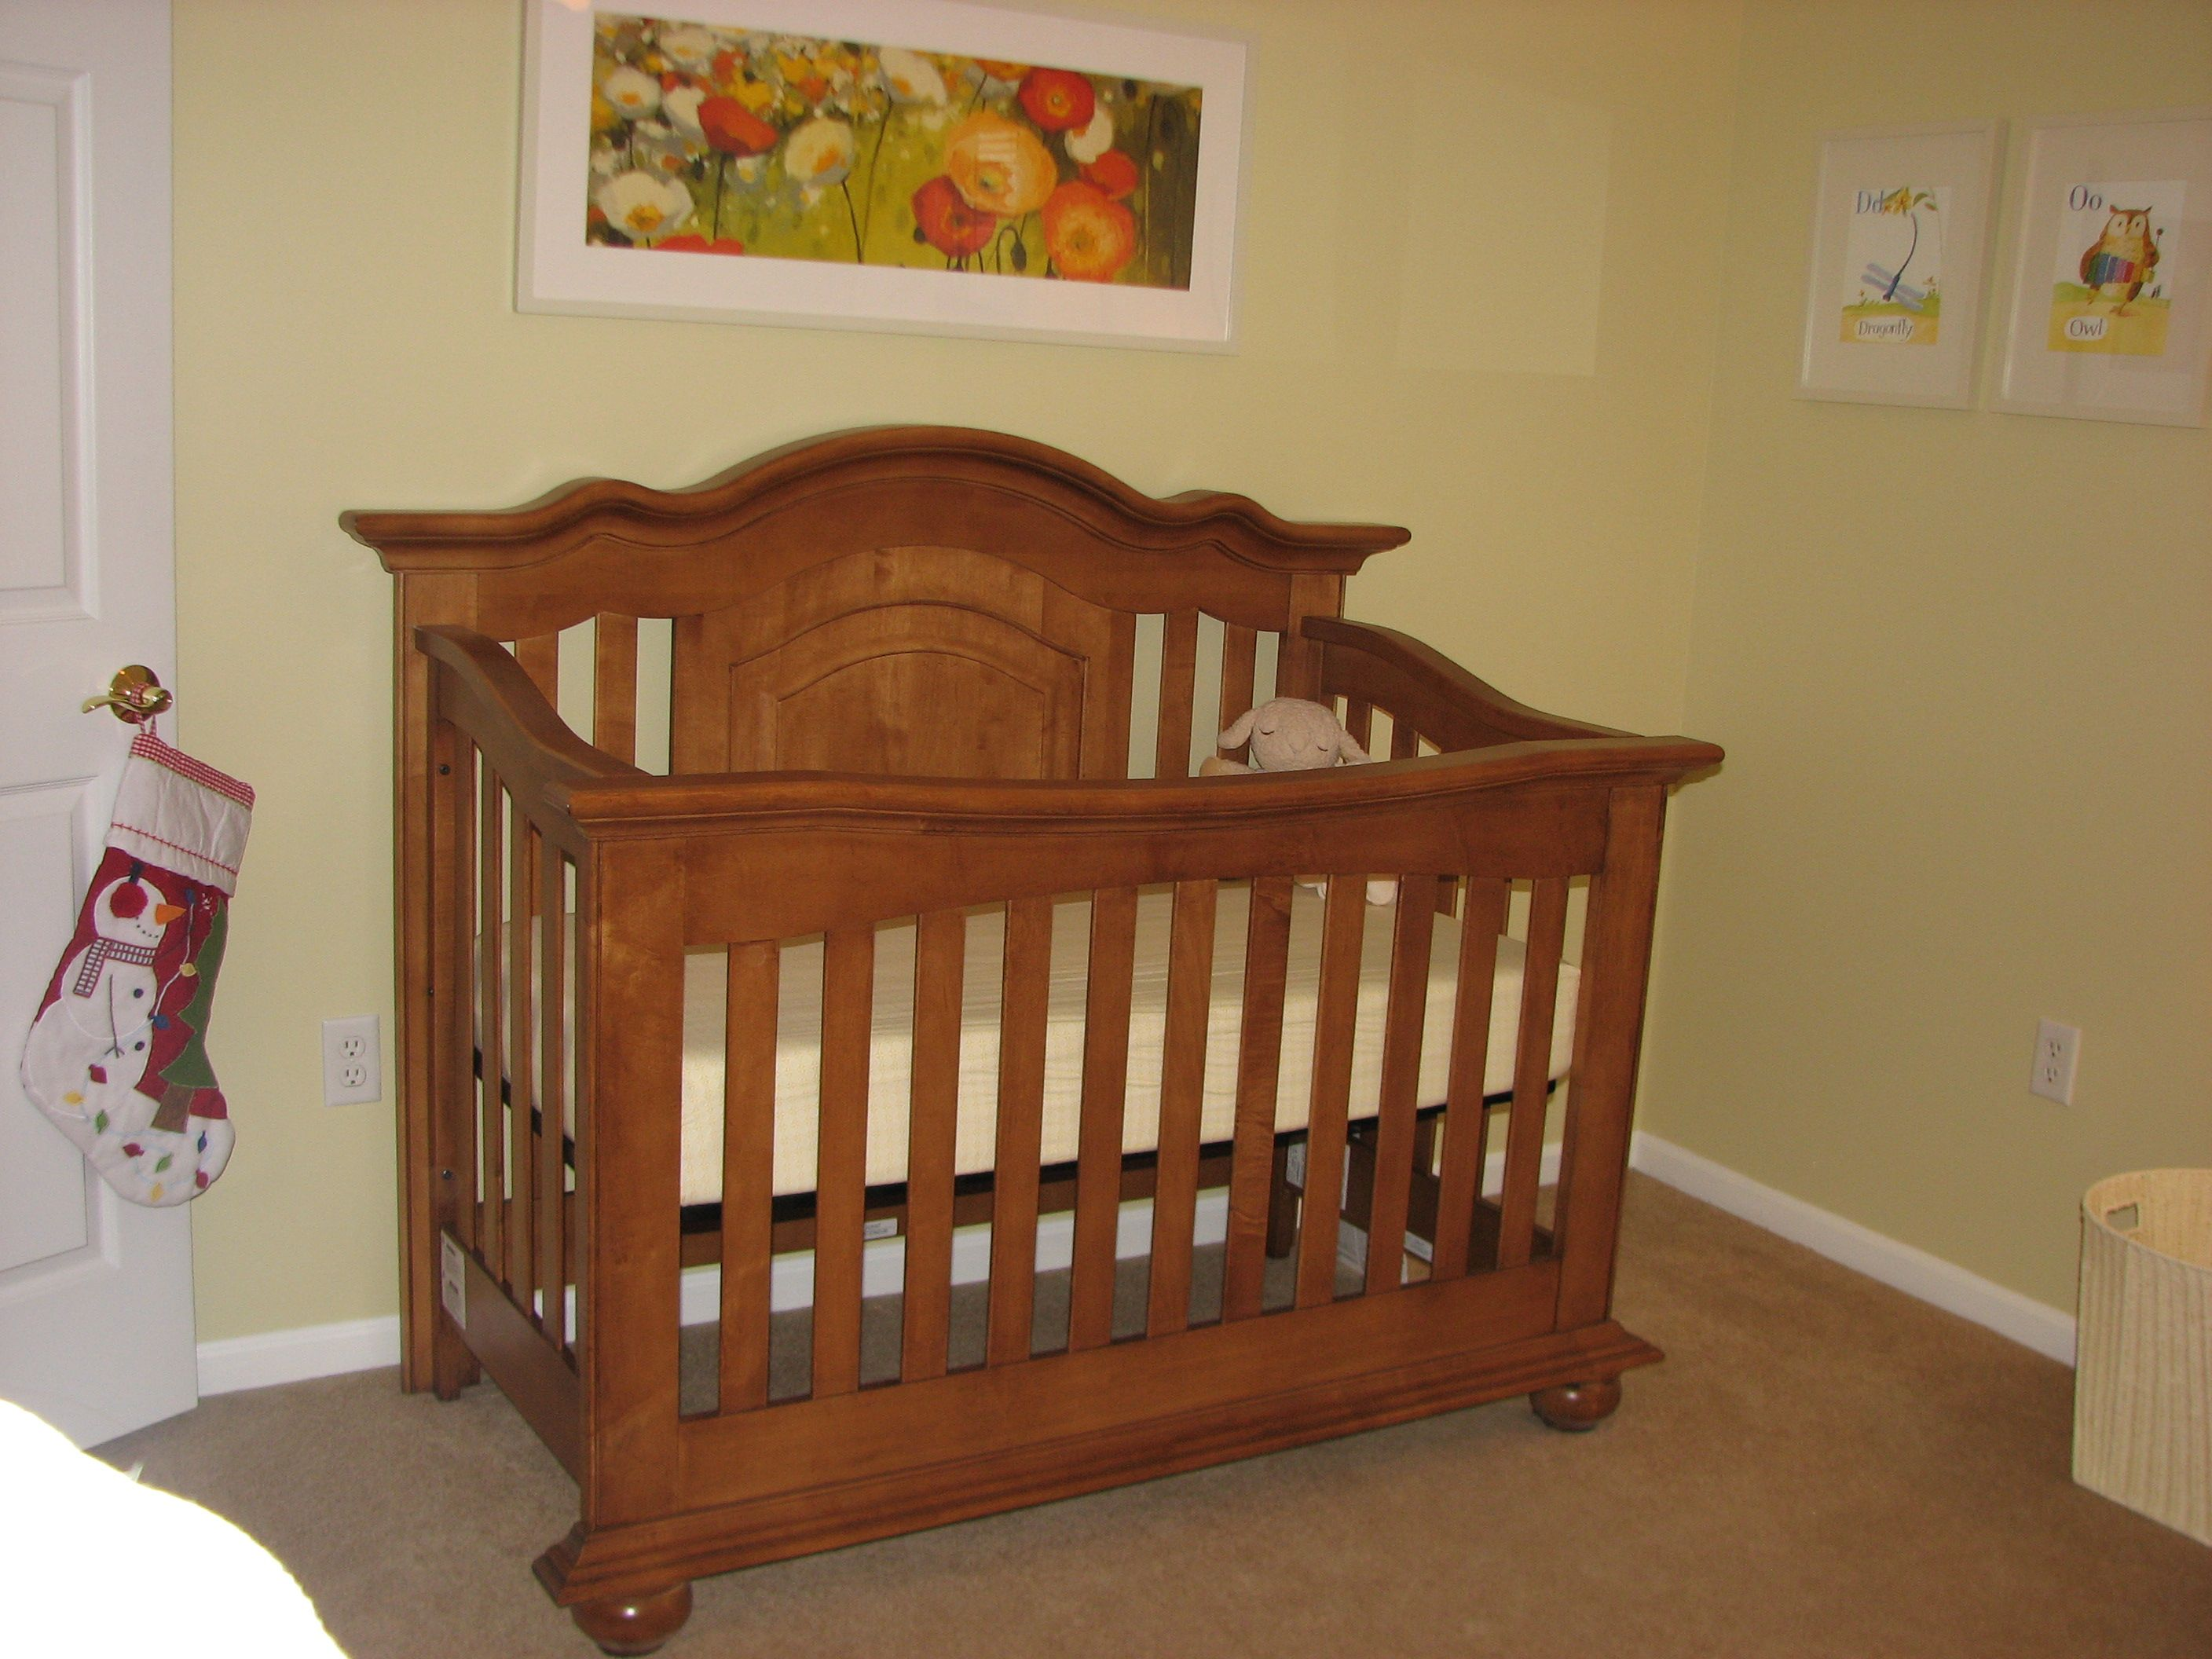 echelon diya curve top crib in fawn stocking from pottery barn kids frames from